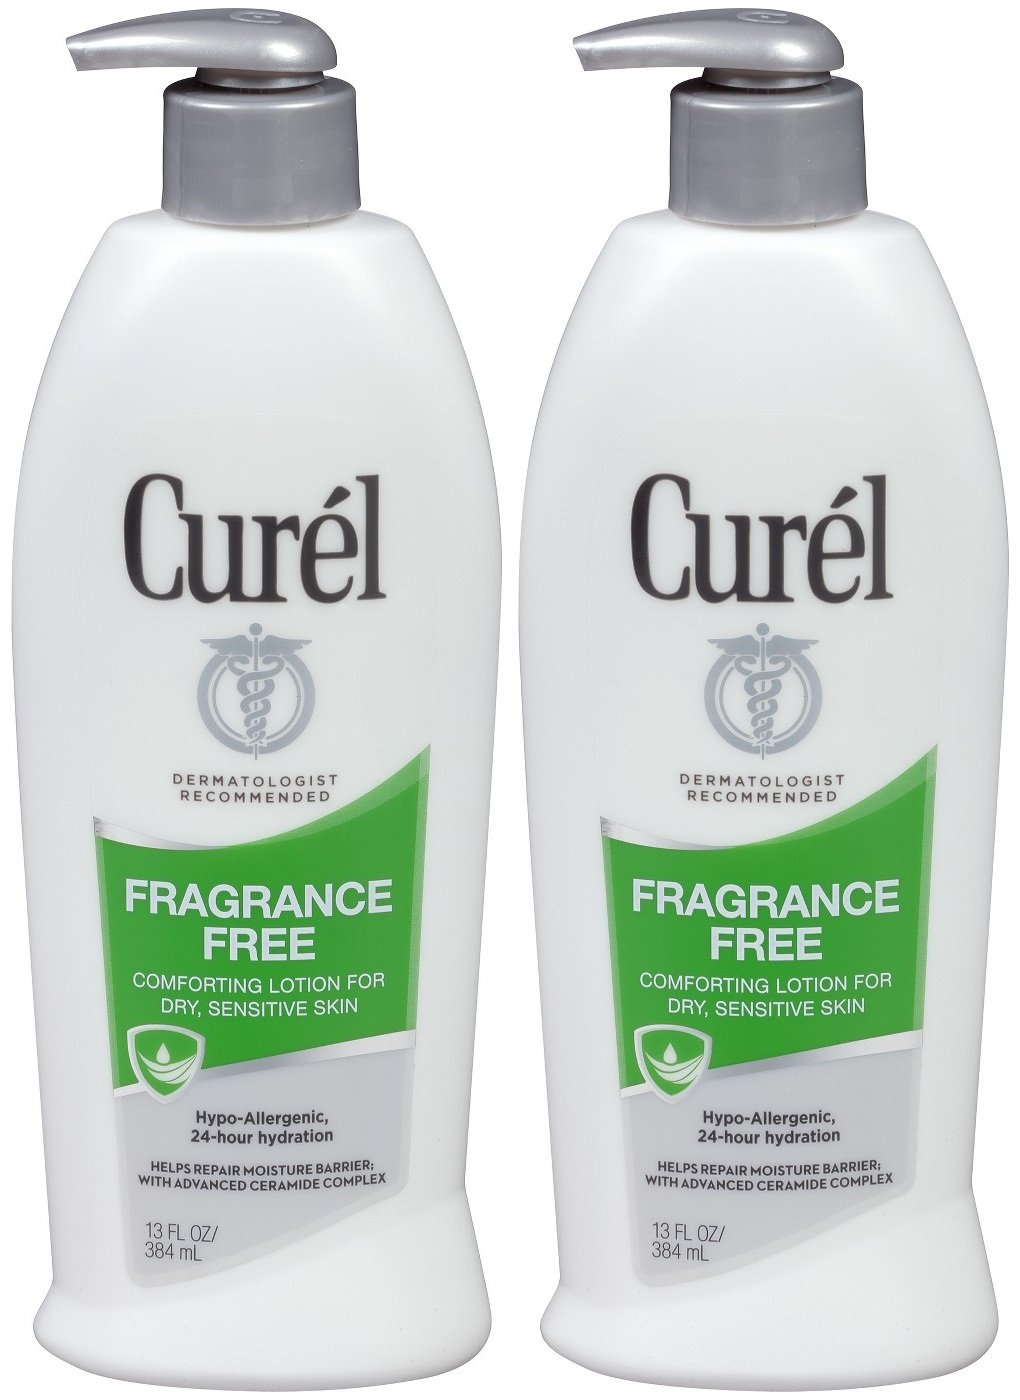 Curel Advanced Ceramide Therapy Original Lotion for Dry & Sensitive Skin, Fragrance Free, 13 Oz (Pack of 2)